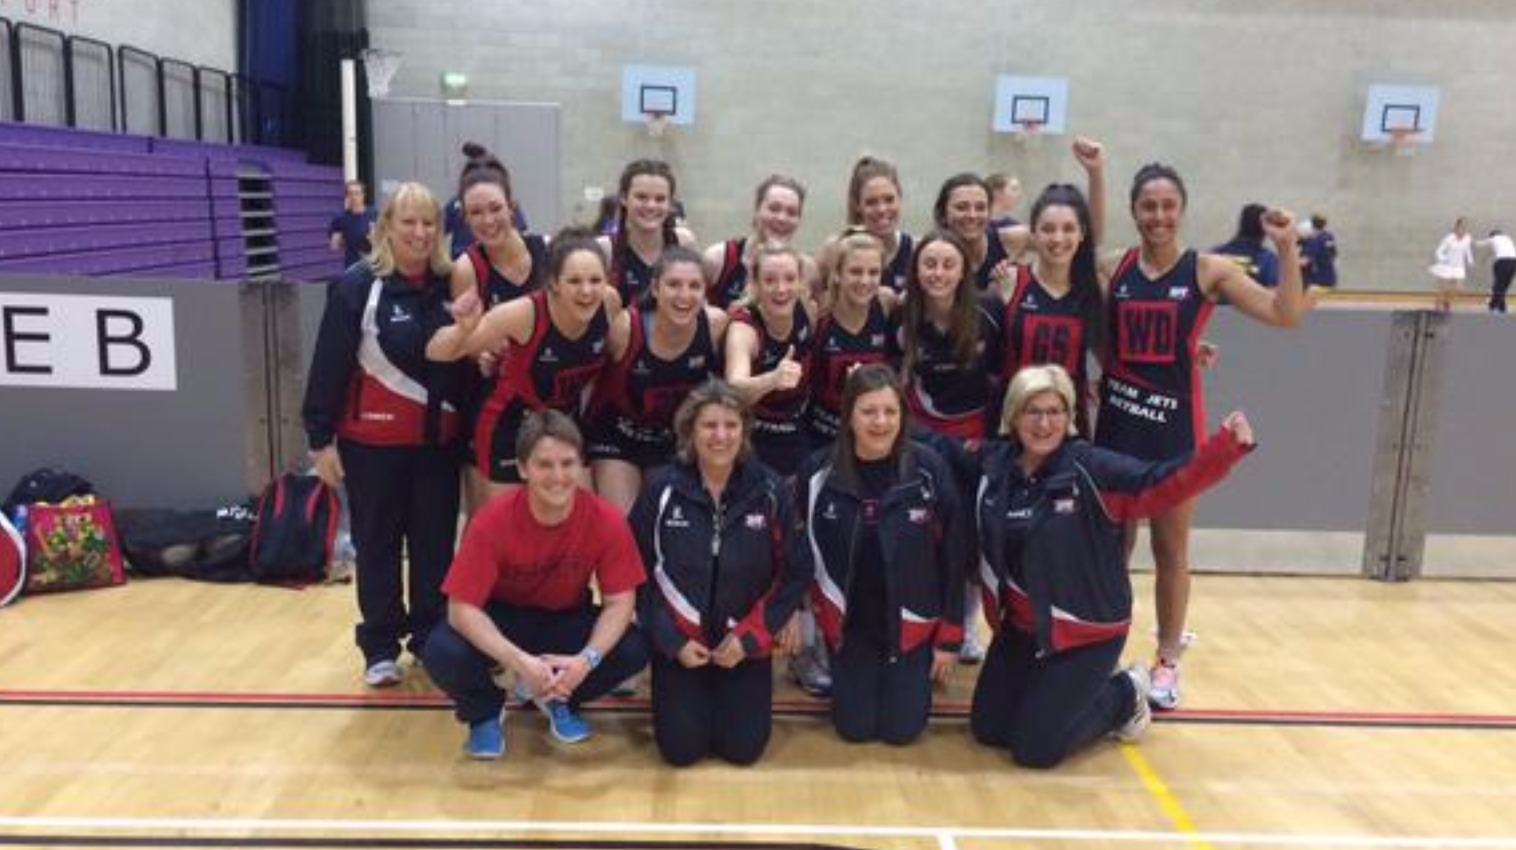 Jets claim excellent win at high flying Ryland | Channel ...